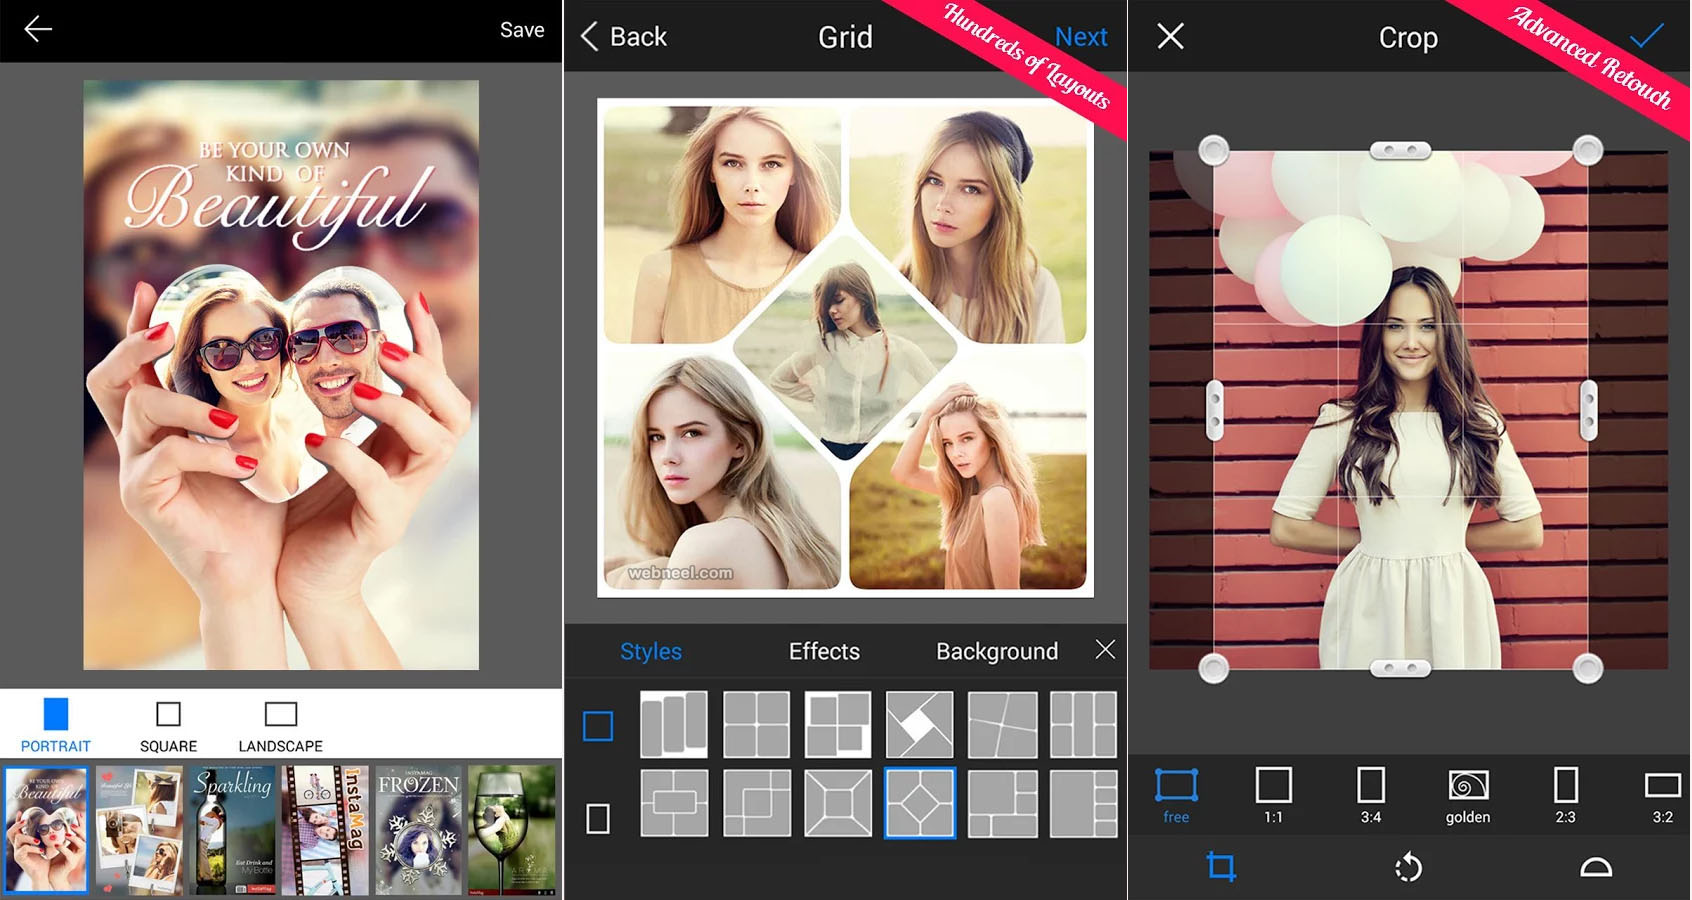 Remarkable, best picture editor free download have thought